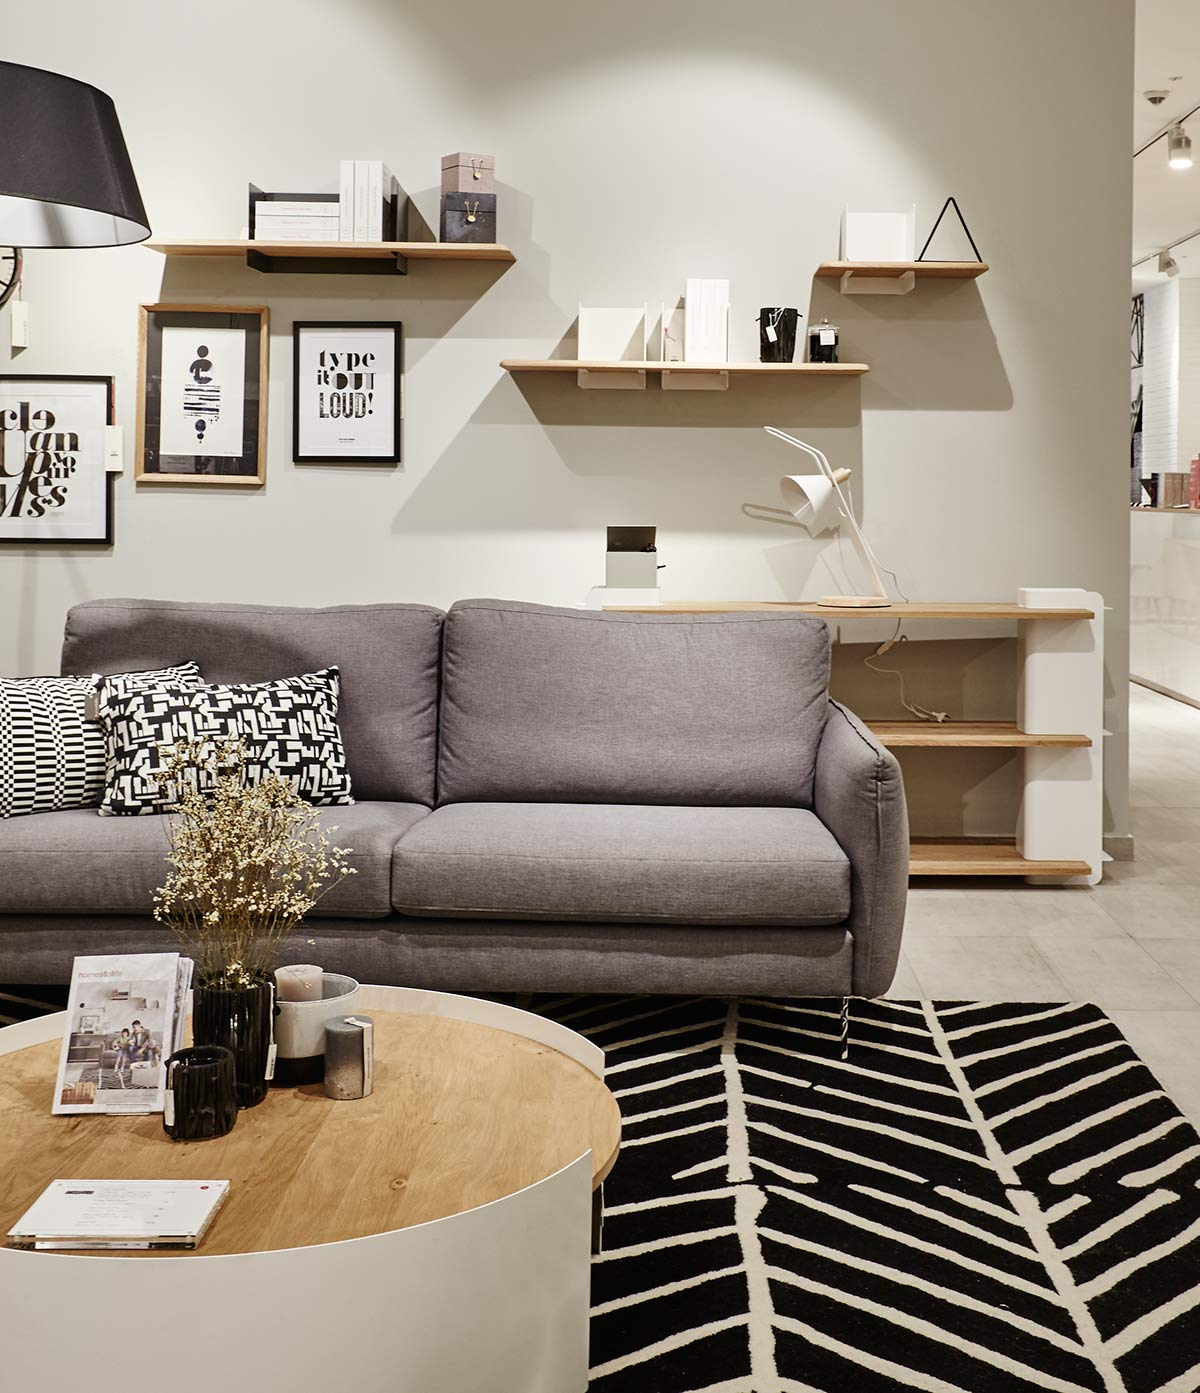 Danish Inspired Furniture A Furniture Shop For All Things Scandinavian Squarerooms